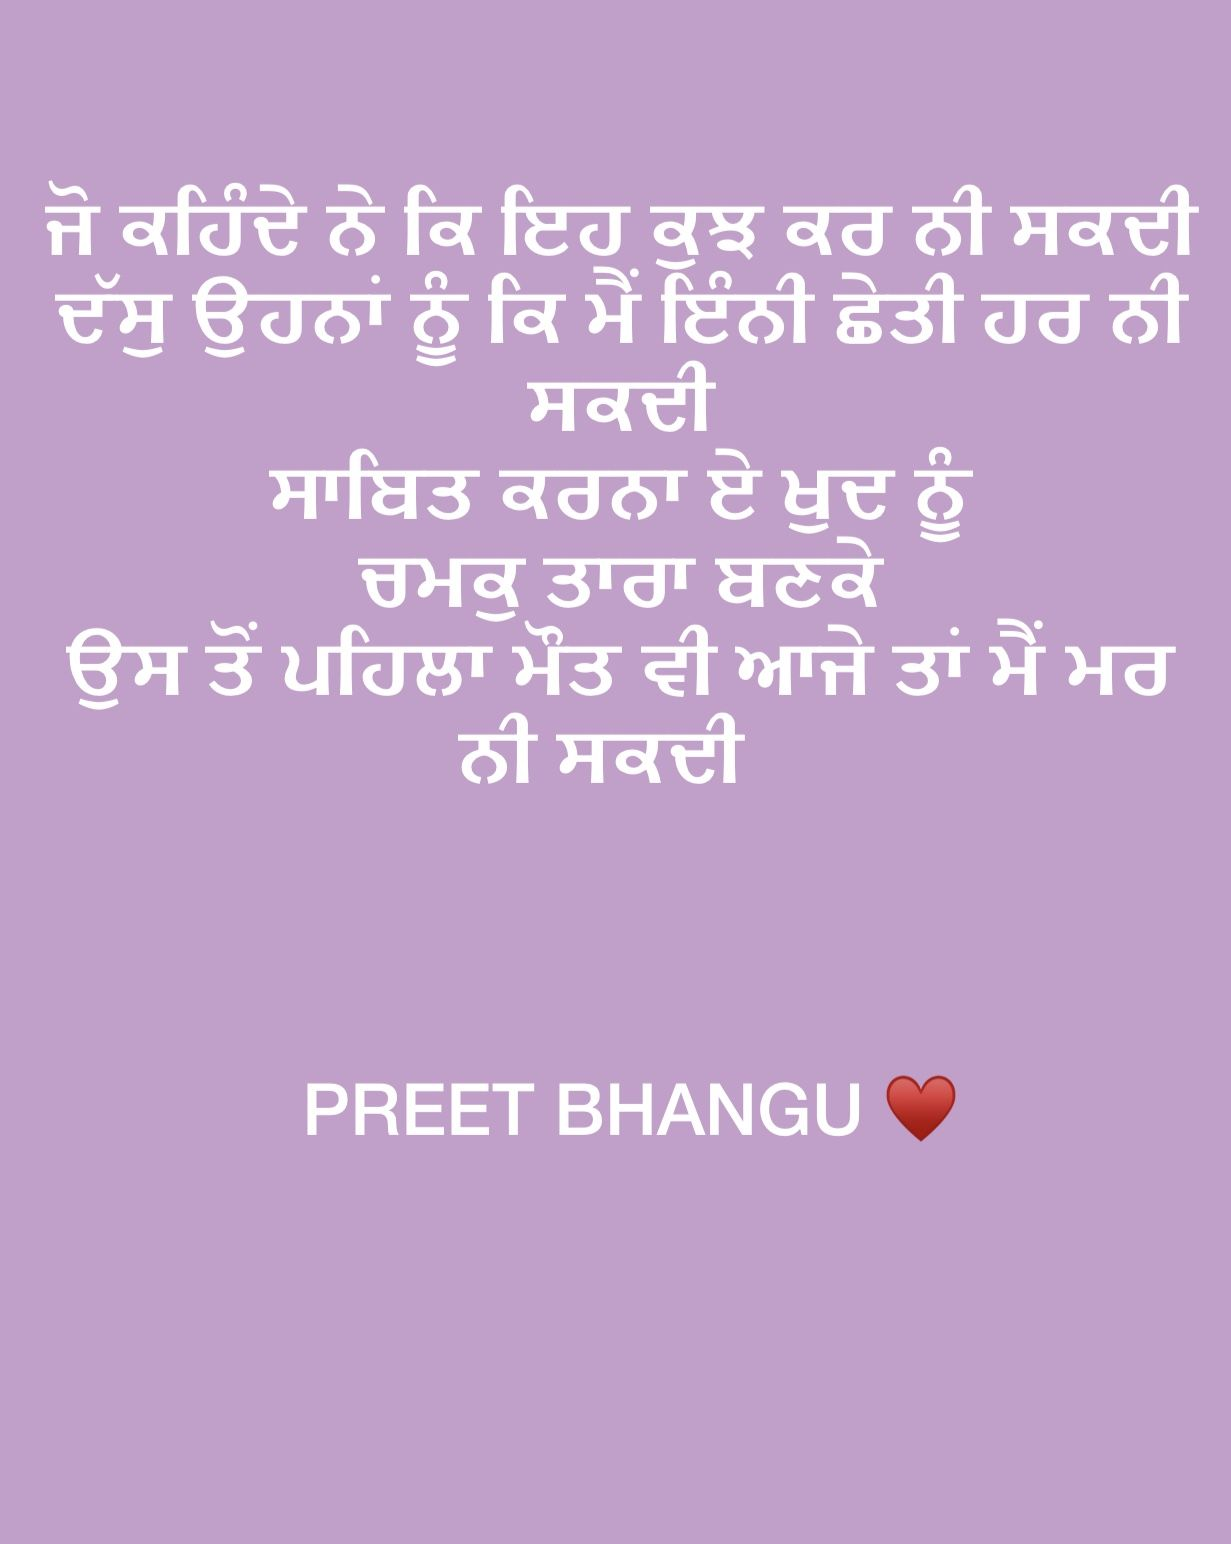 My Friend You Are The Best Husanbhangu Touching Quotes Punjabi Quotes Miss You Friend